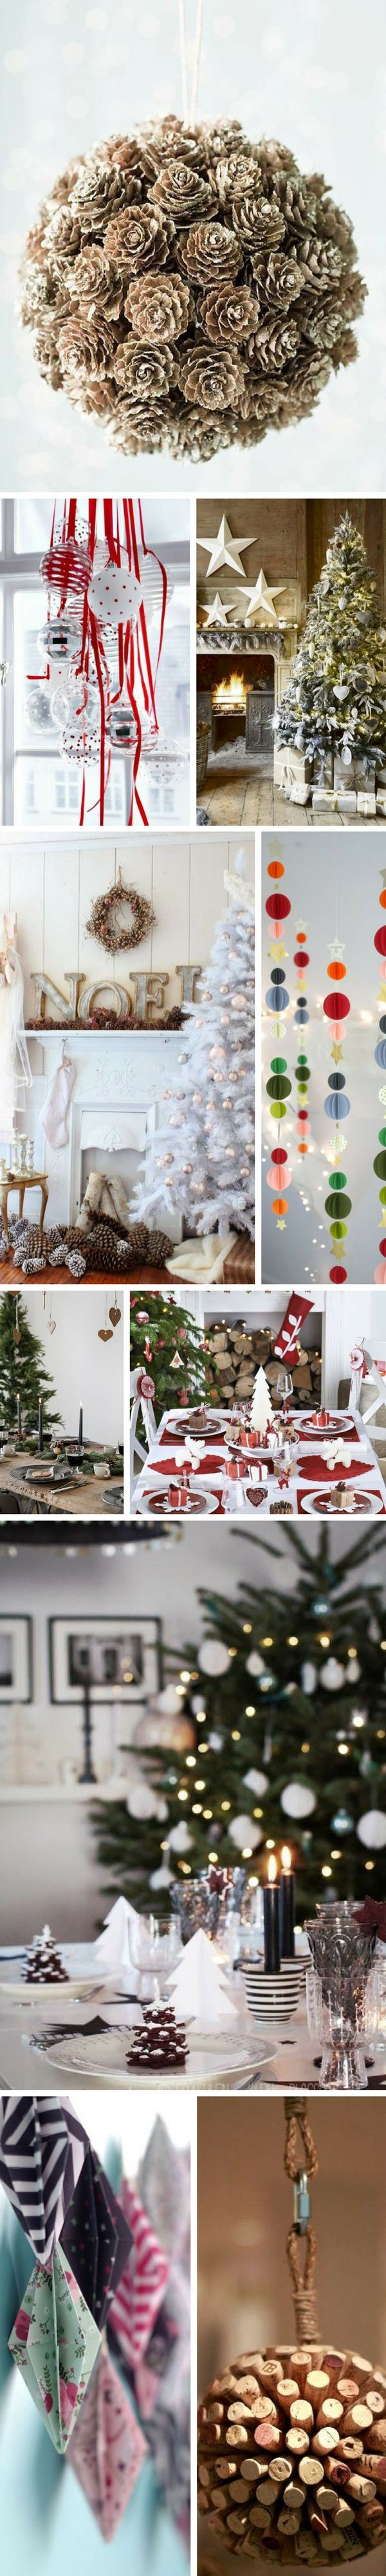 Decoration noel 2017 2018 for Decoration maison tendance 2018